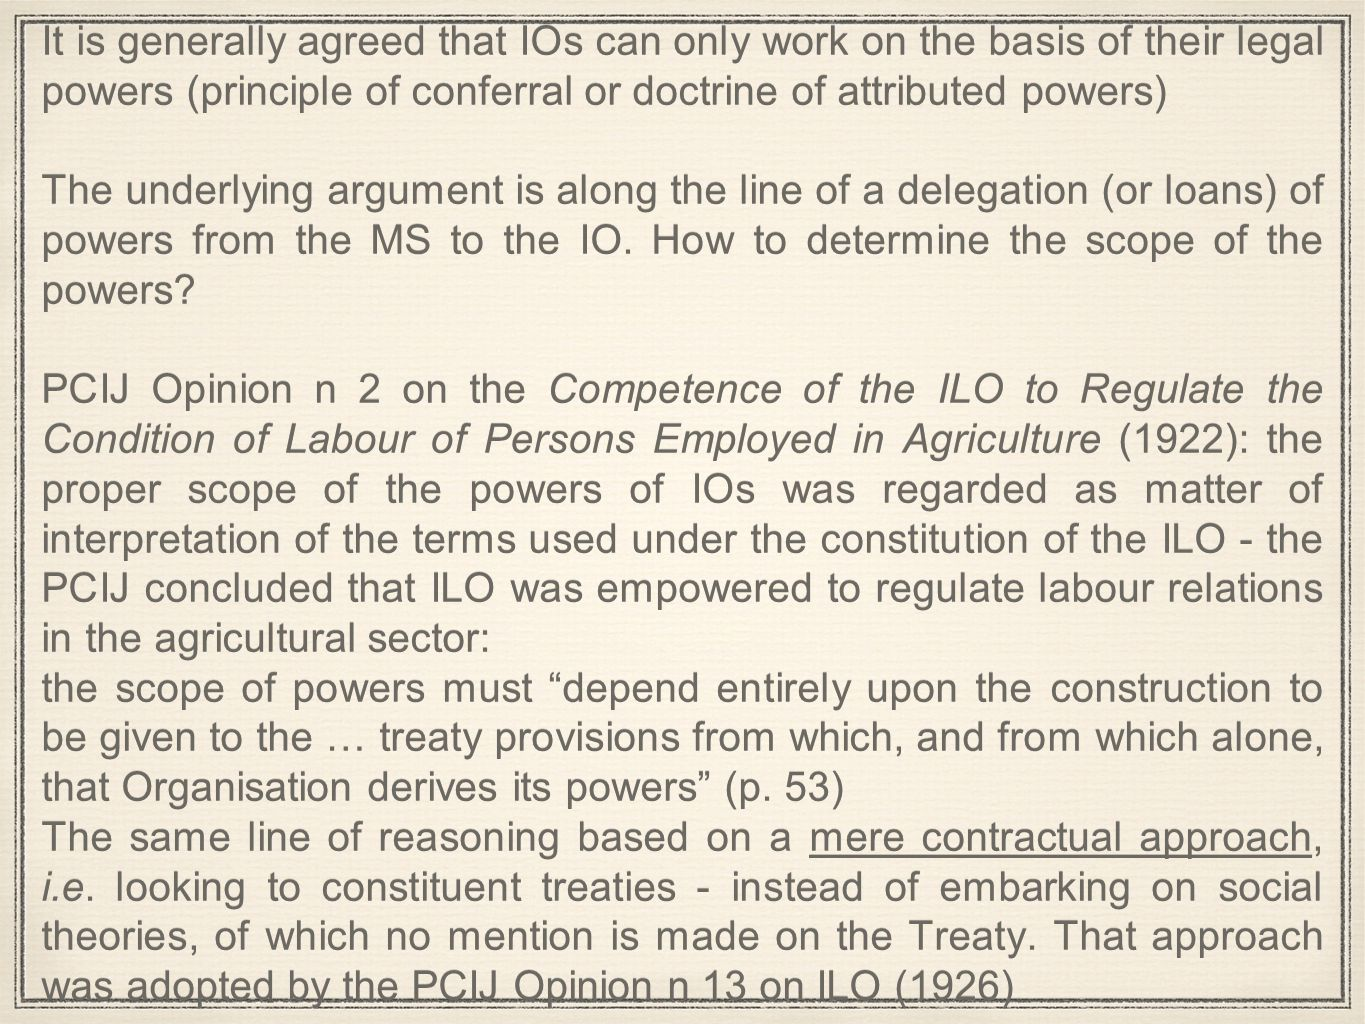 It is generally agreed that IOs can only work on the basis of their legal powers (principle of conferral or doctrine of attributed powers) The underlying argument is along the line of a delegation (or loans) of powers from the MS to the IO.